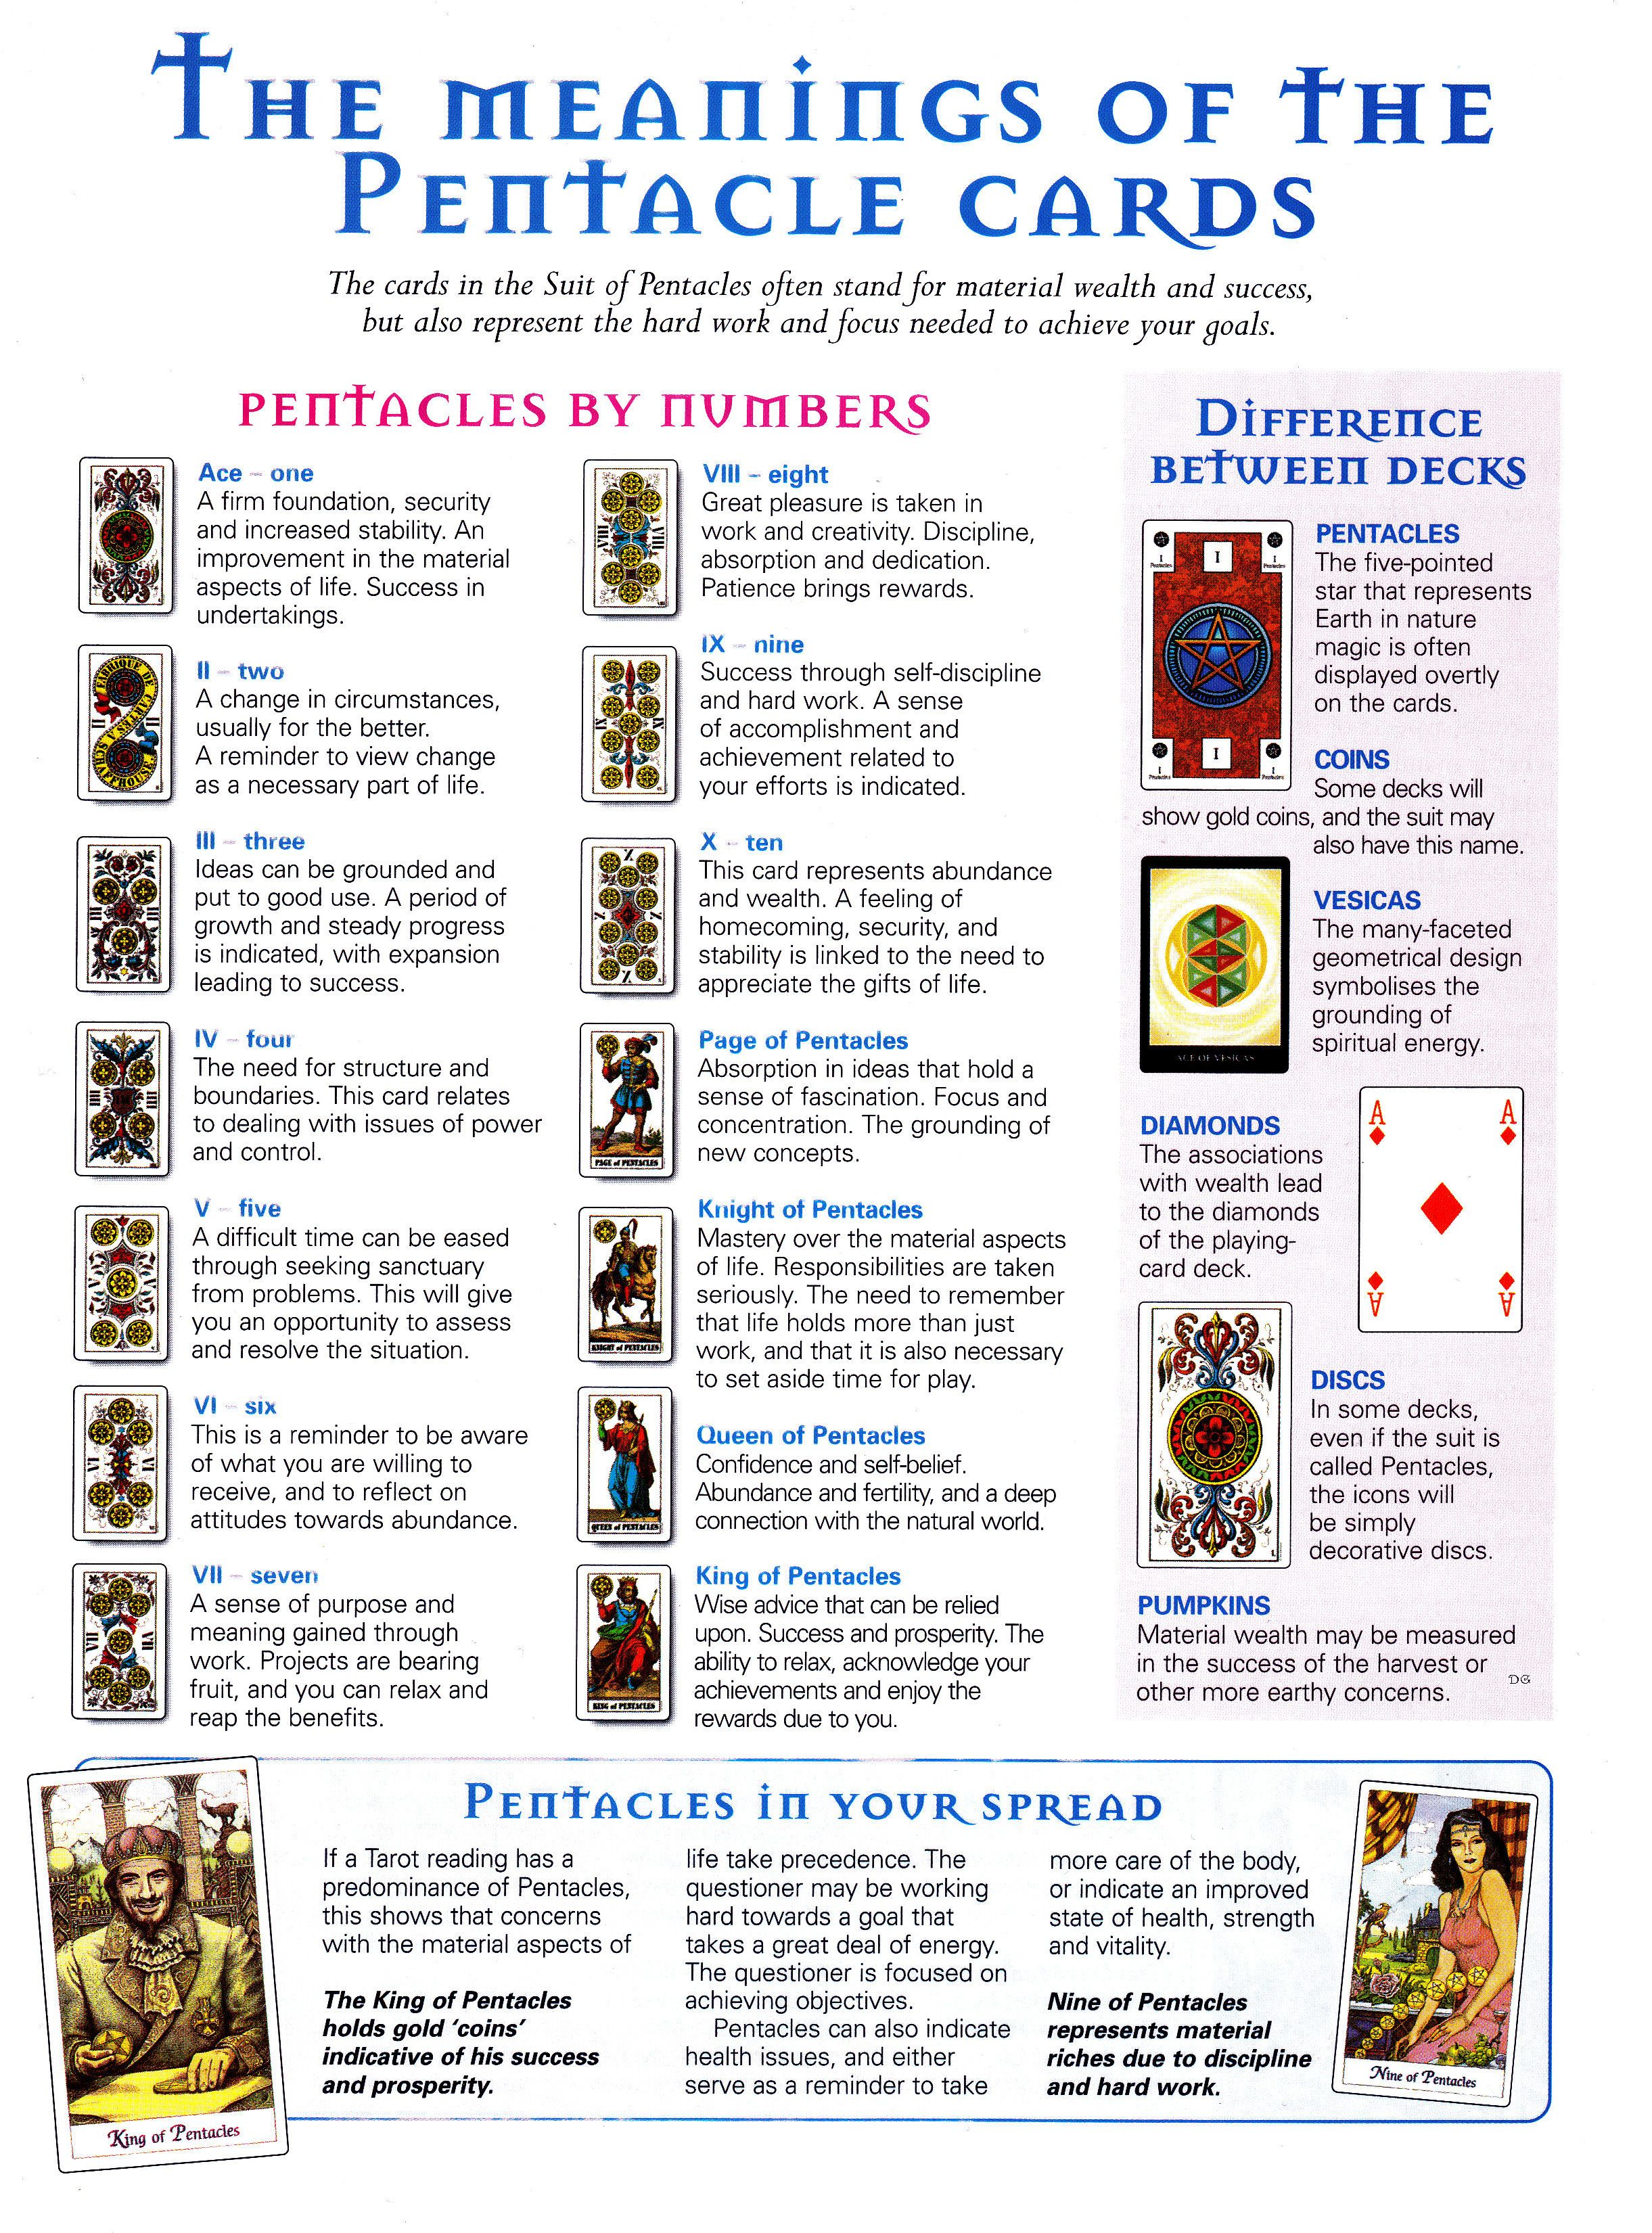 Meanings Of The Suit Of Pentacles